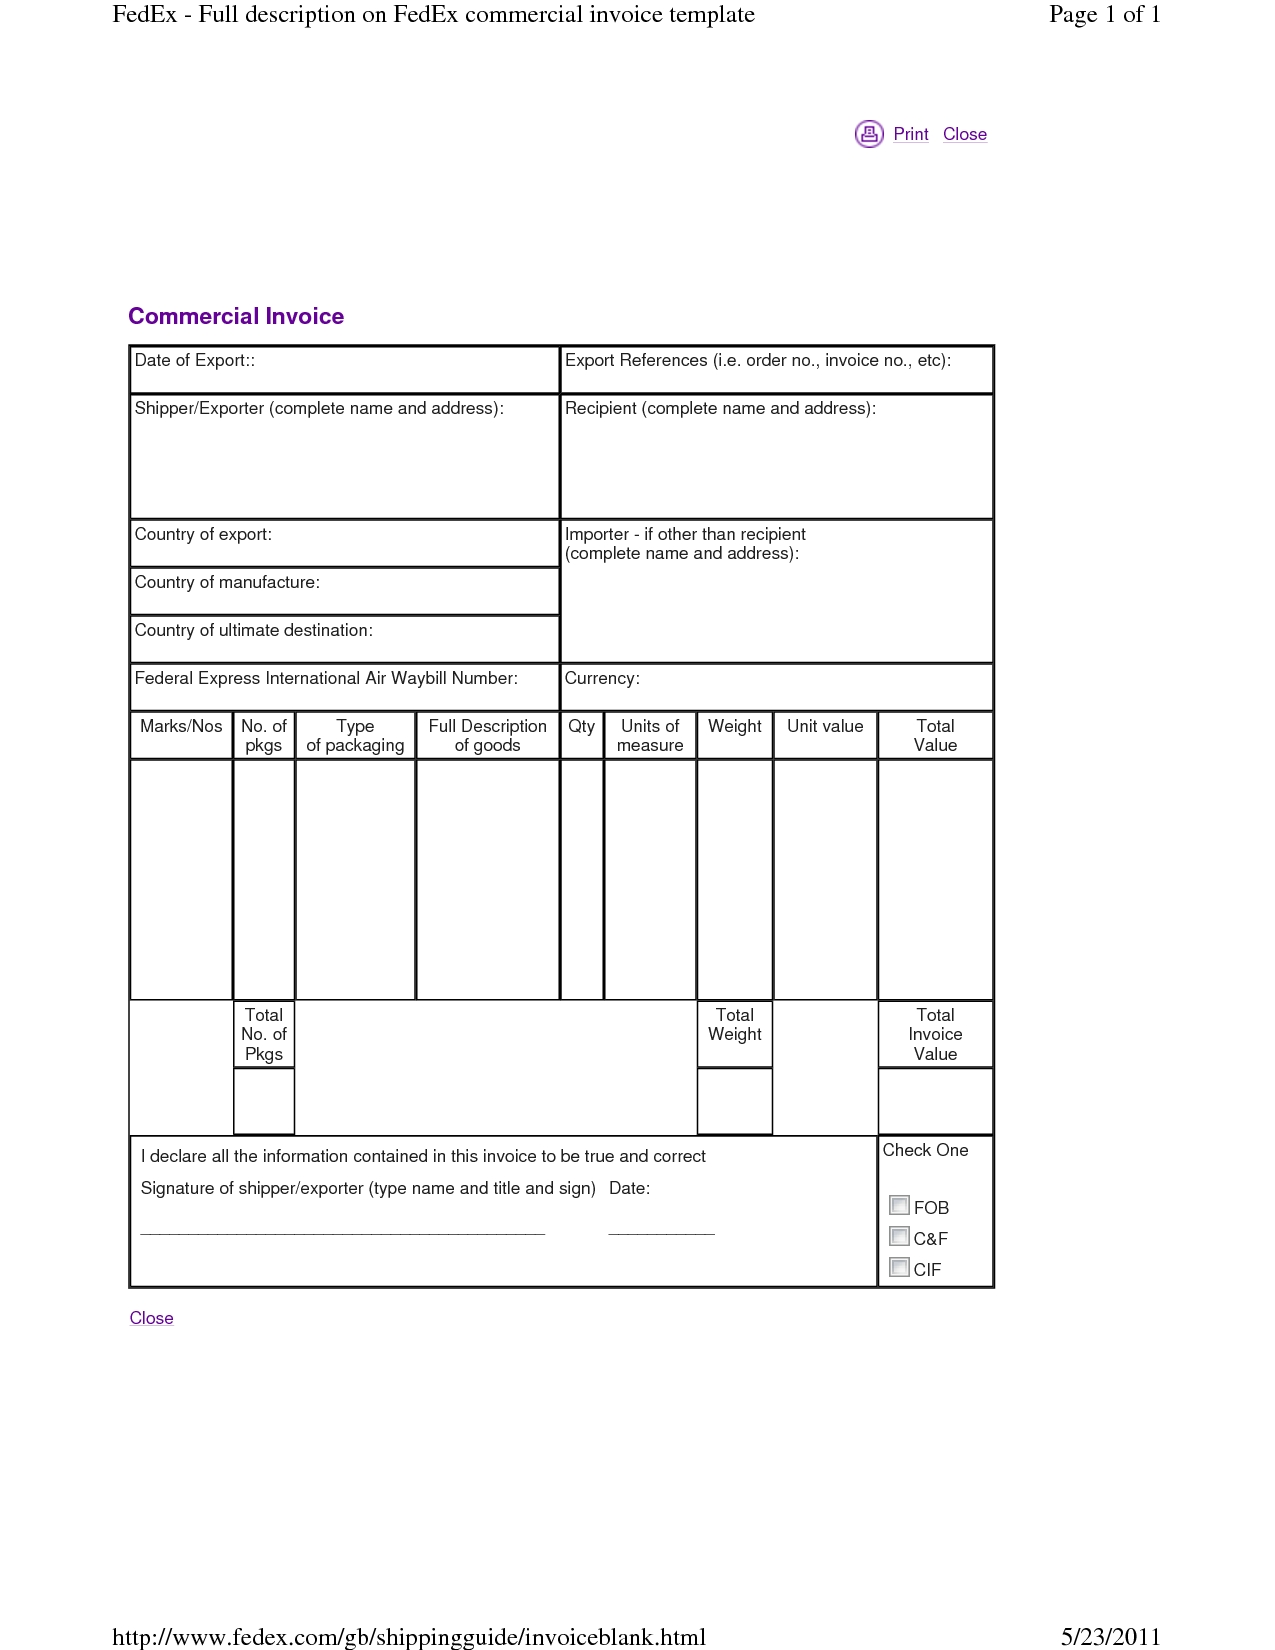 commercial invoice fedex template d theme fedex pro forma invoice